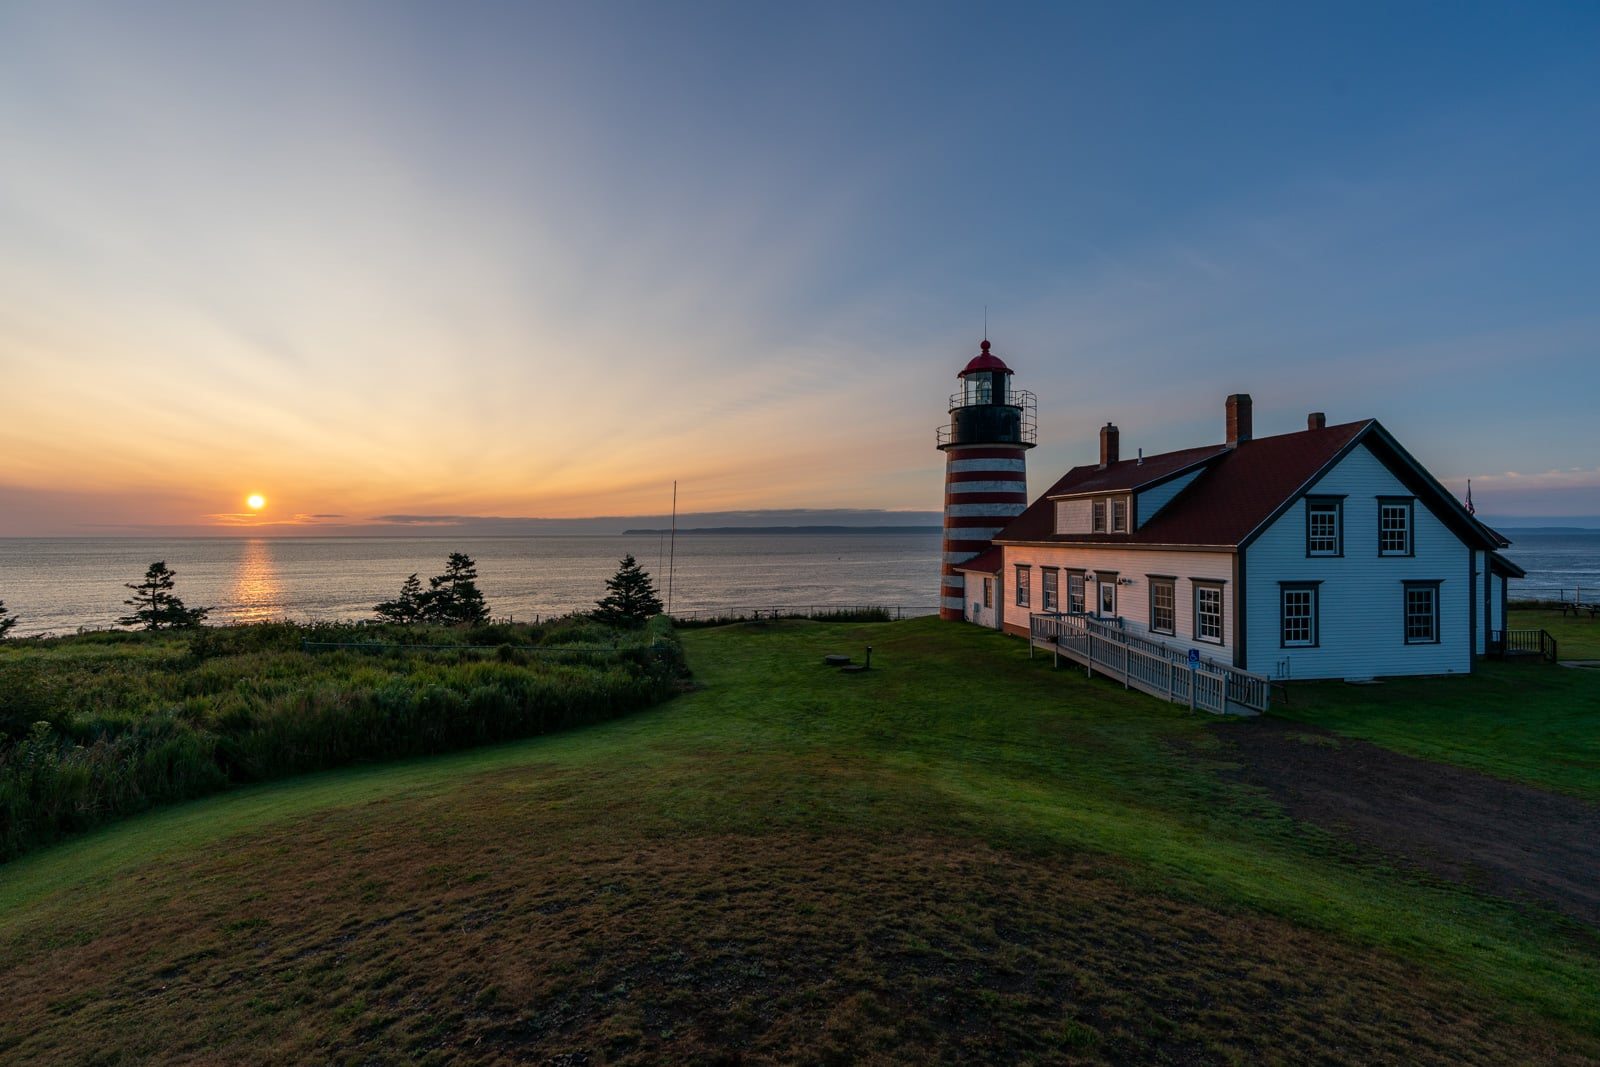 Sunrise at West Quoddy Head Lighthouse in Lubec, Maine